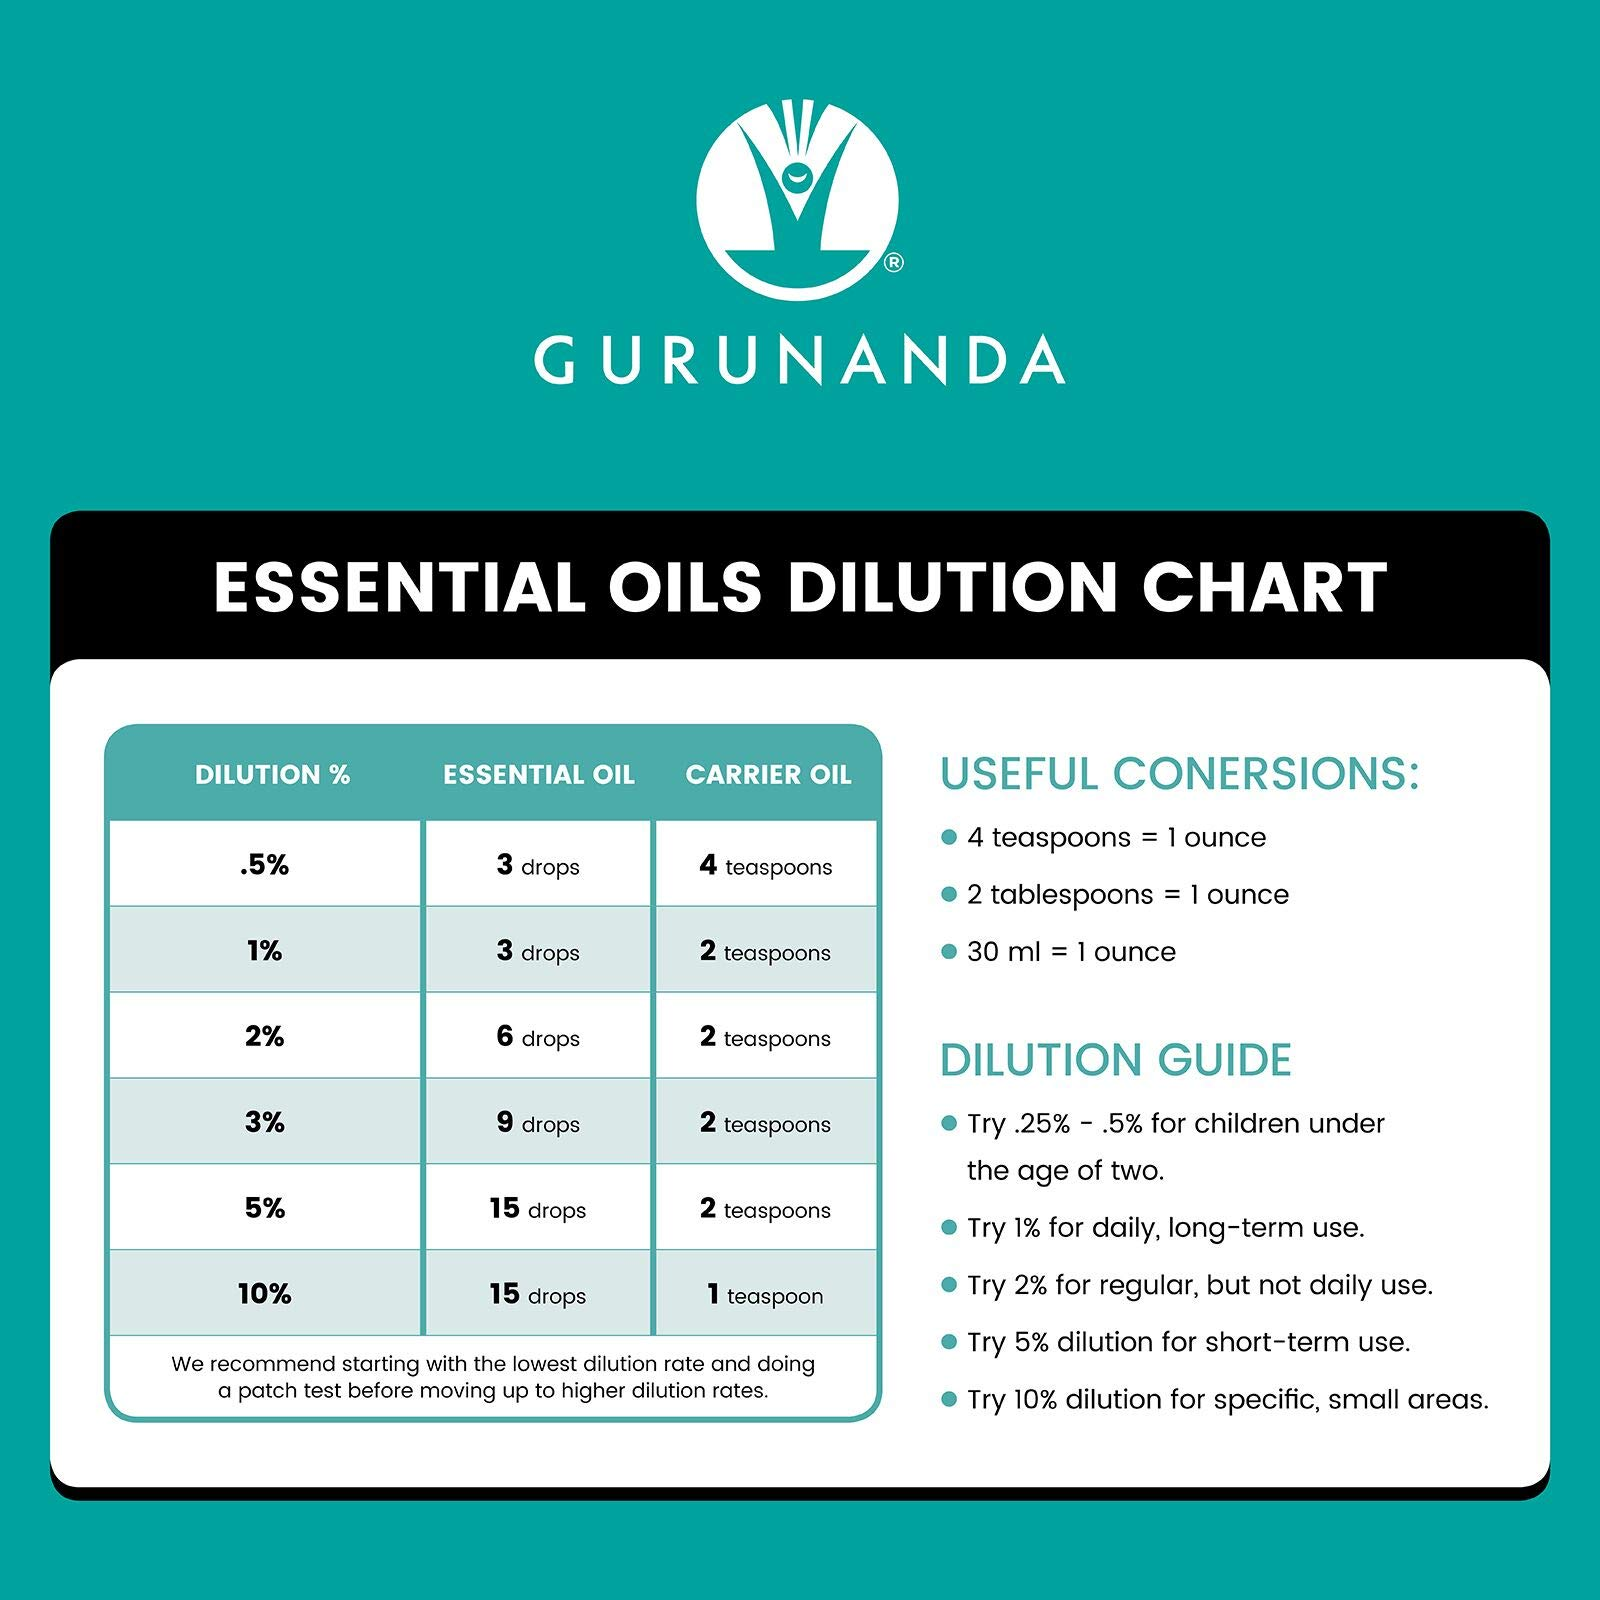 GuruNanda Eucalyptus Essential Oils | Heal with Nature | Pure & Natural Therapeutic Grade Aromatherapy Oil for Diffuser | Humidifier I Promotes Clear Breathing | Undiluted (20 Count)